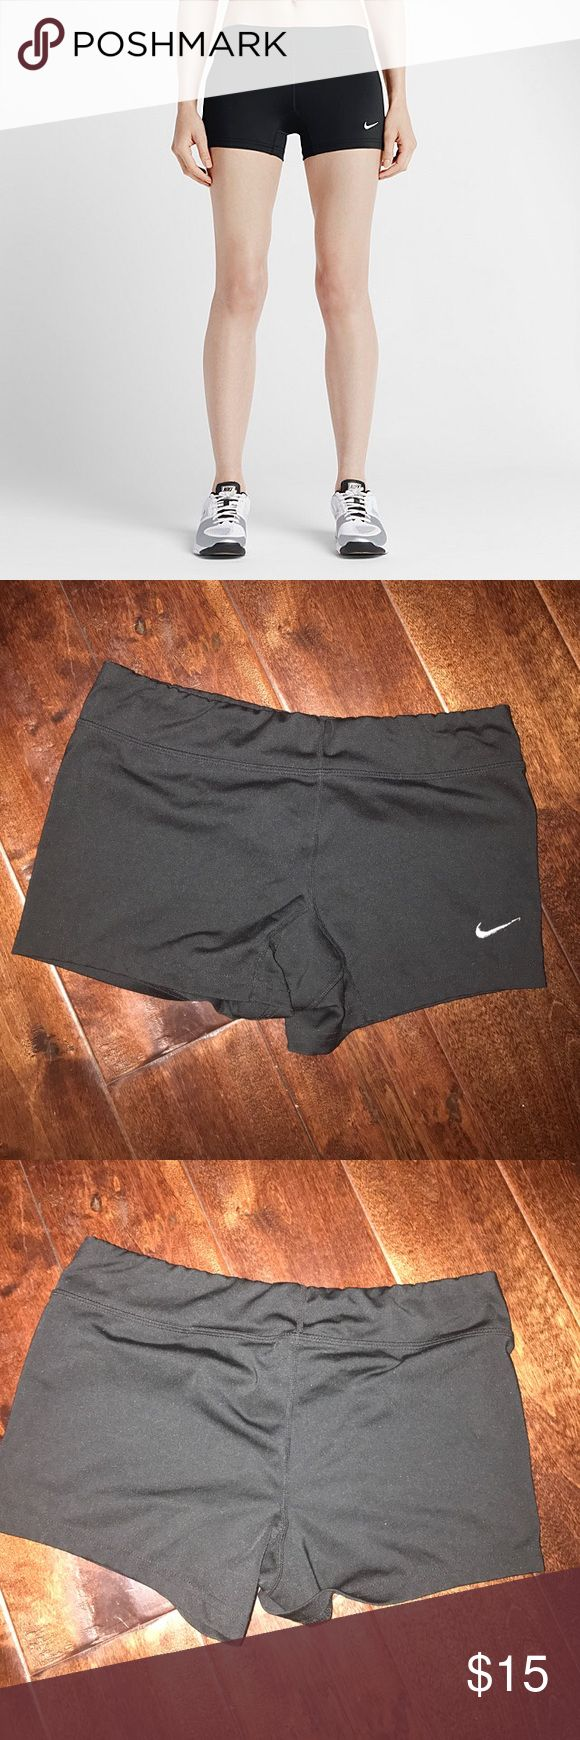 Nike Dri-Fit Black Spandex Shorts Have used these shorts a couple of times. Very comfortable to wear and really cute! Nike Shorts